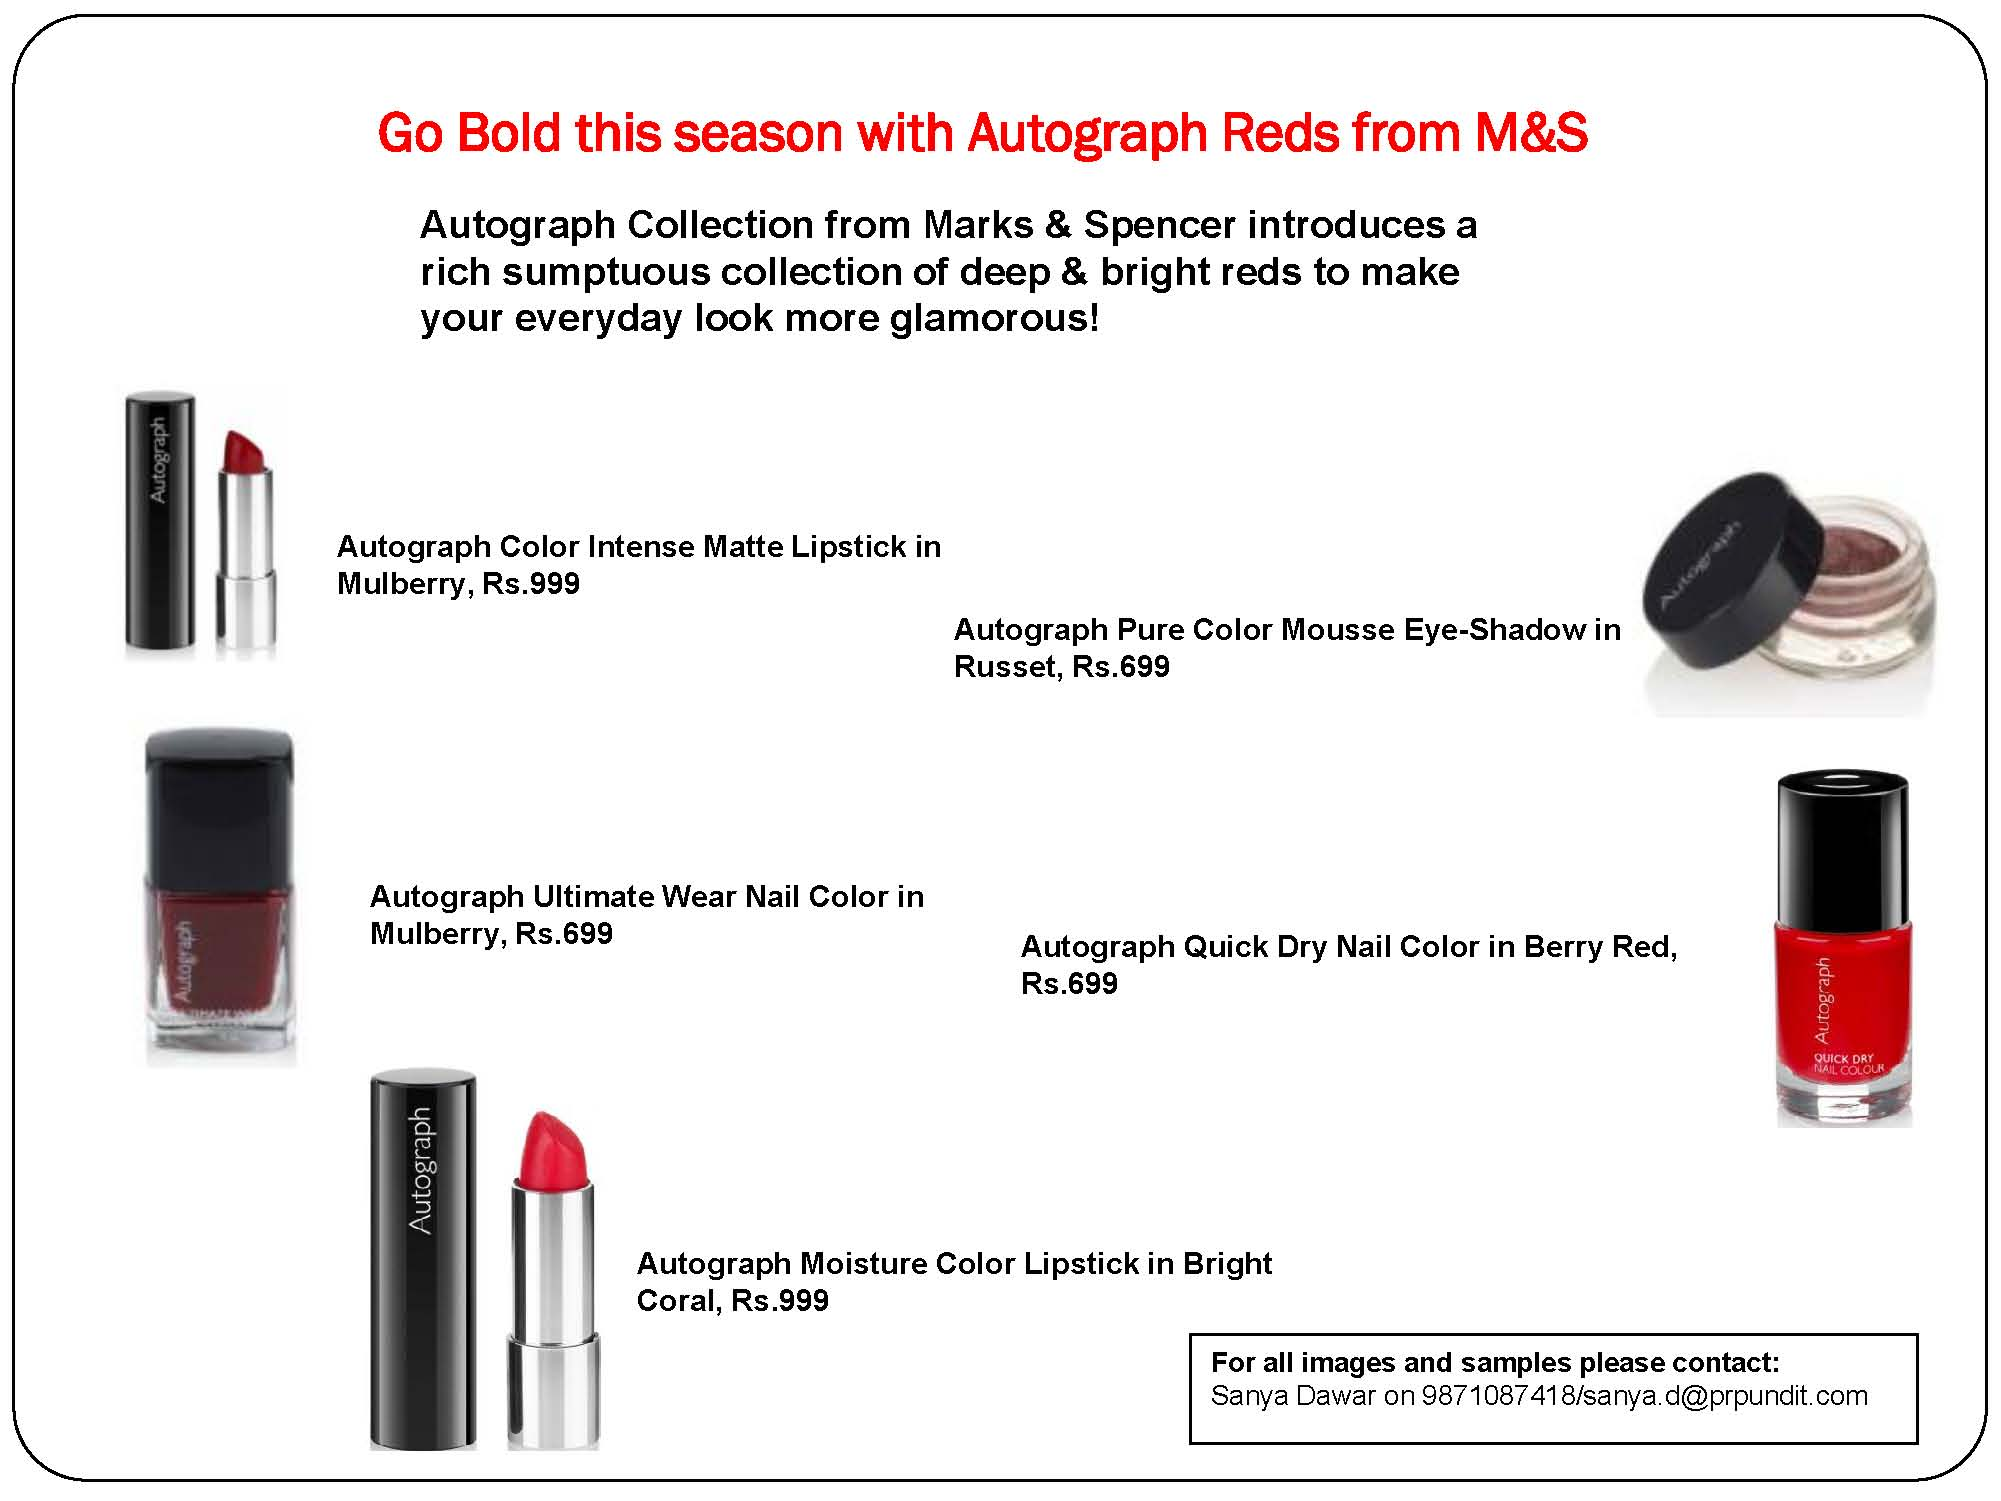 Autograph Reds from Marks & Spencer